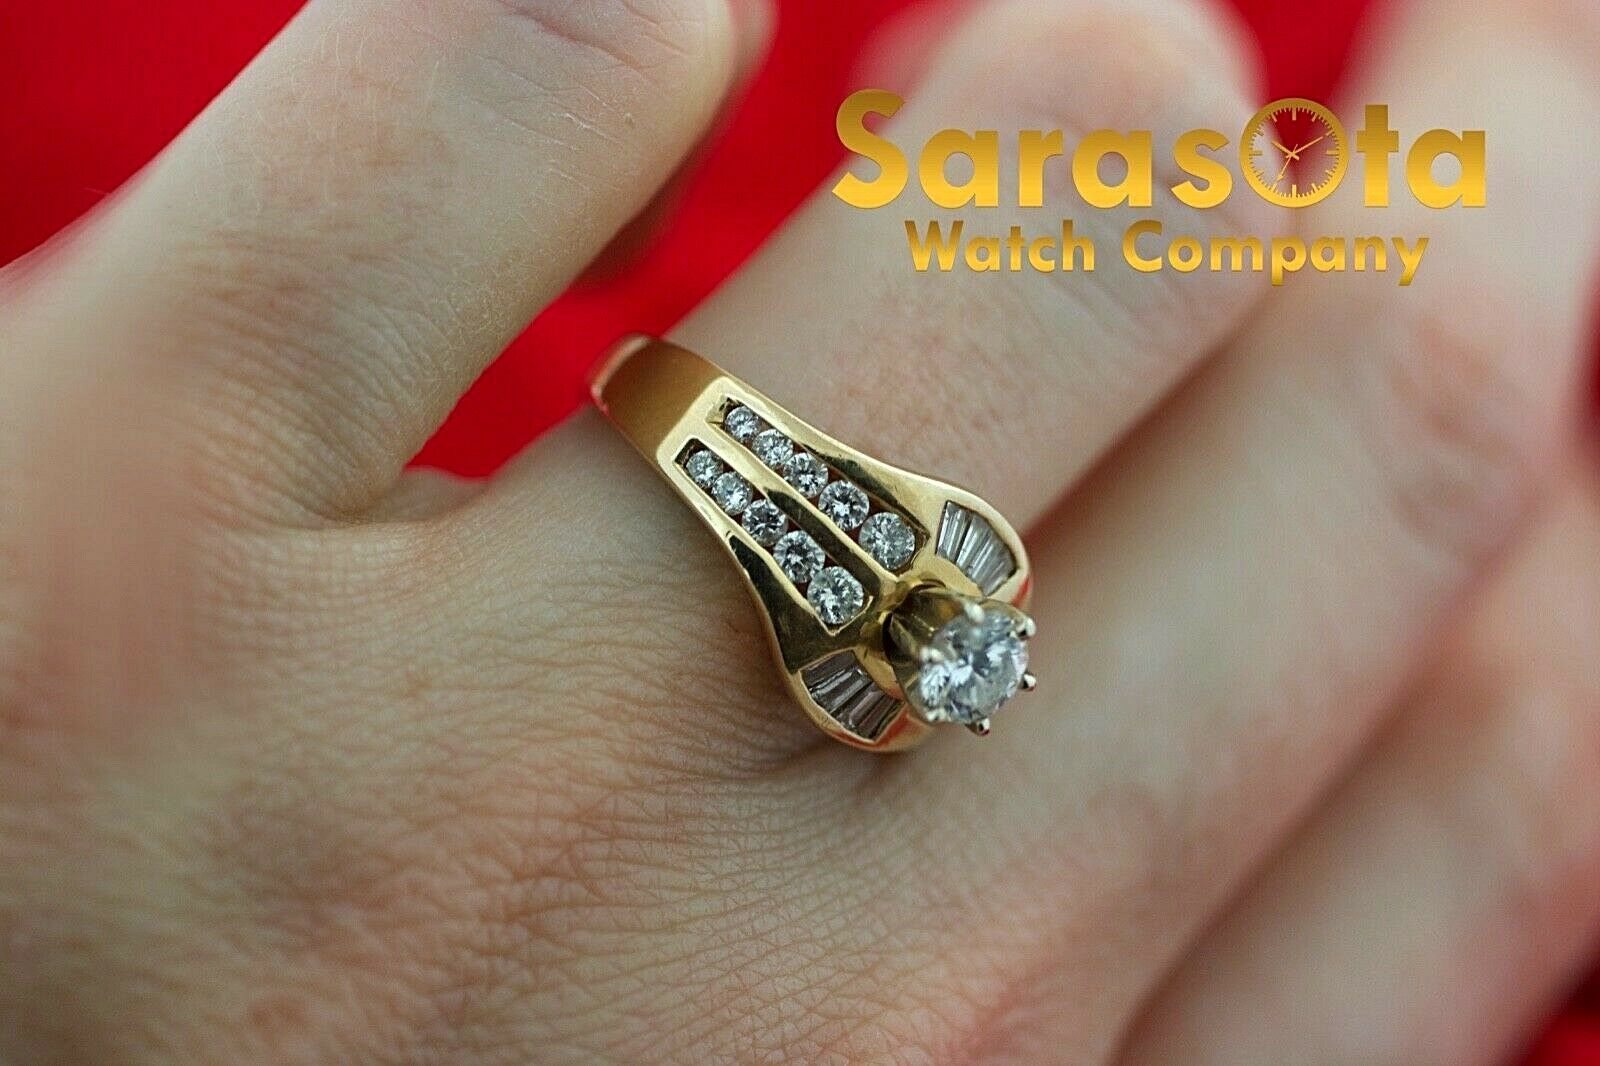 14k Yellow Gold 125ct Diamonds Solitaire with Accent Ring Size 75 132942110435 9